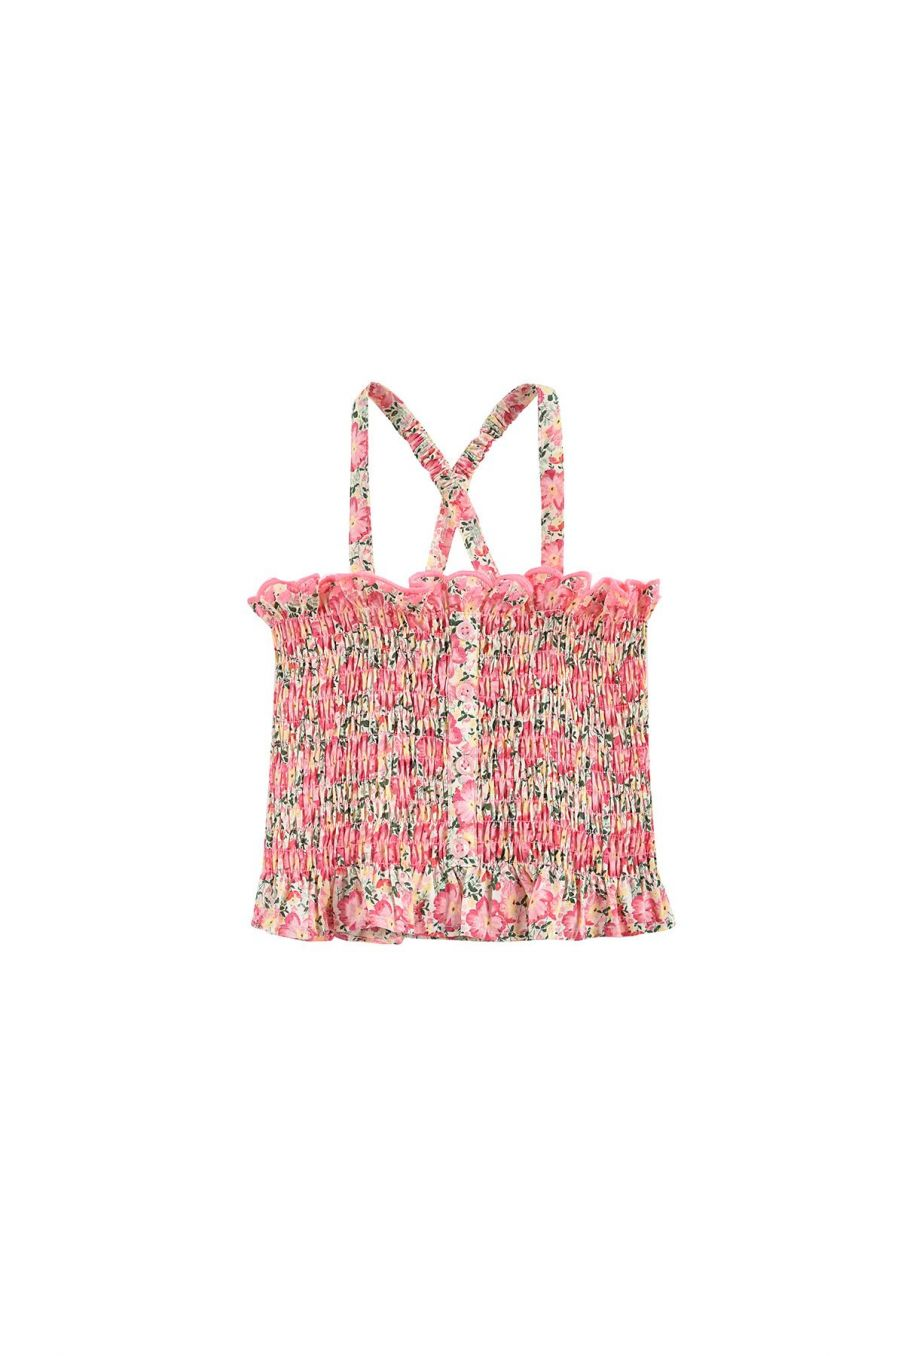 boheme chic vintage top fille malika pink meadow